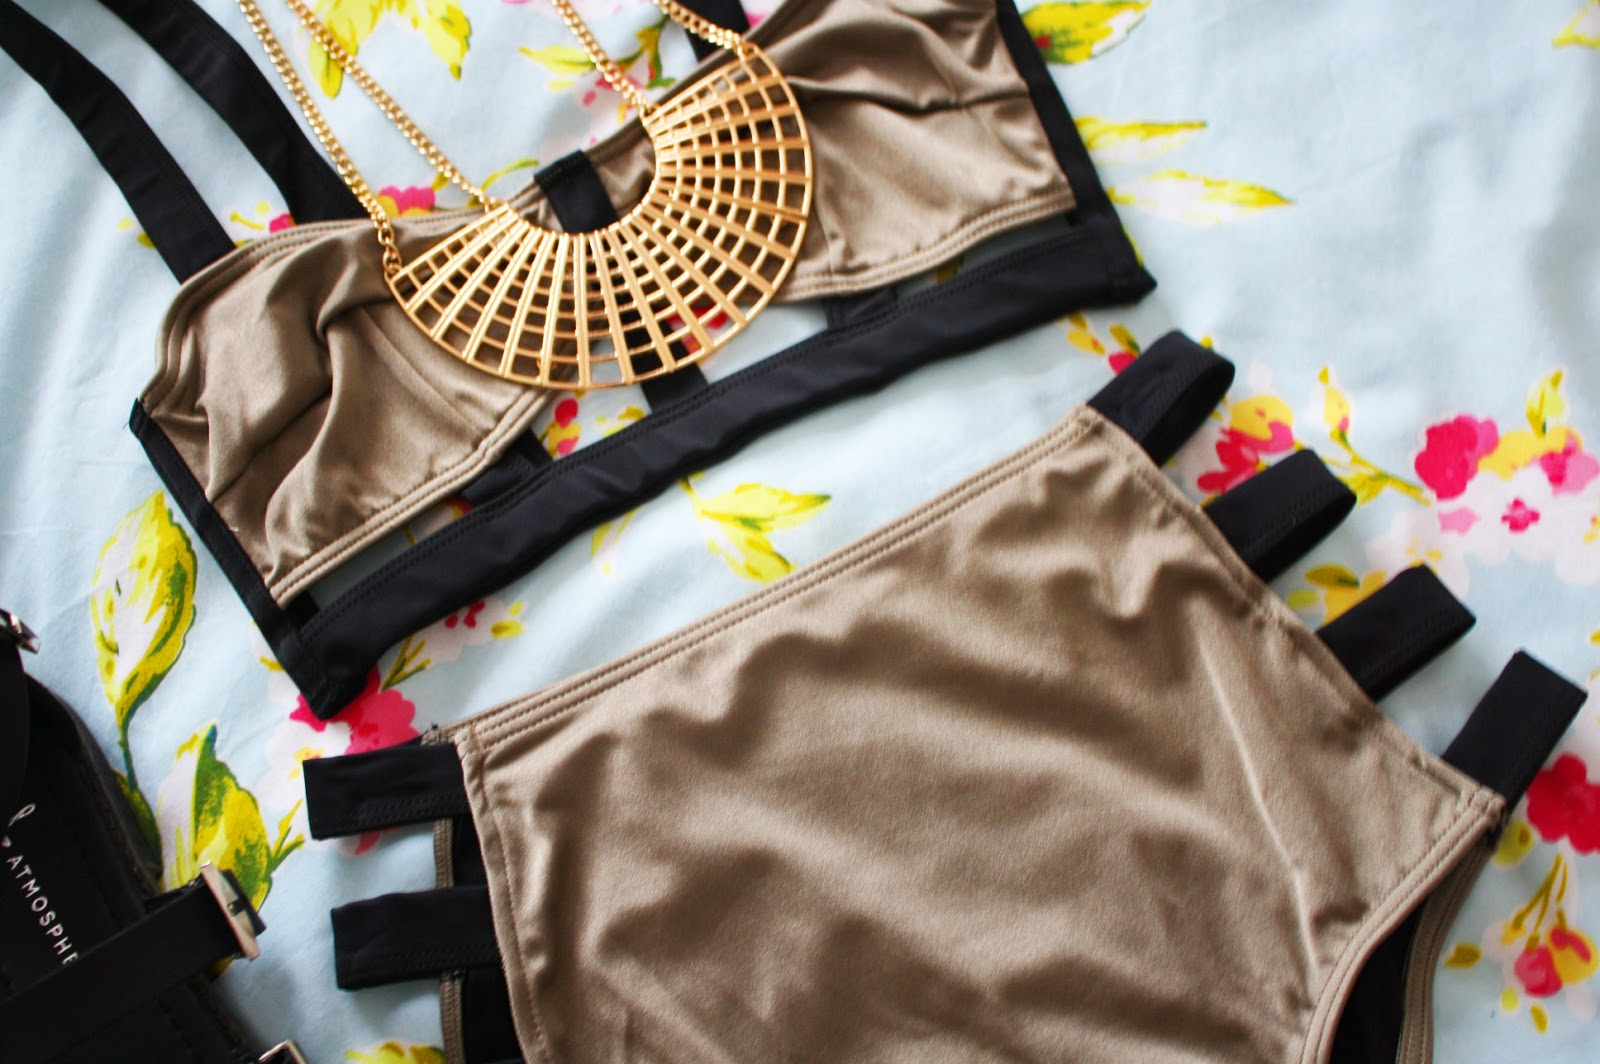 An outfit for the pool featuring my favourite bikini from Topshop